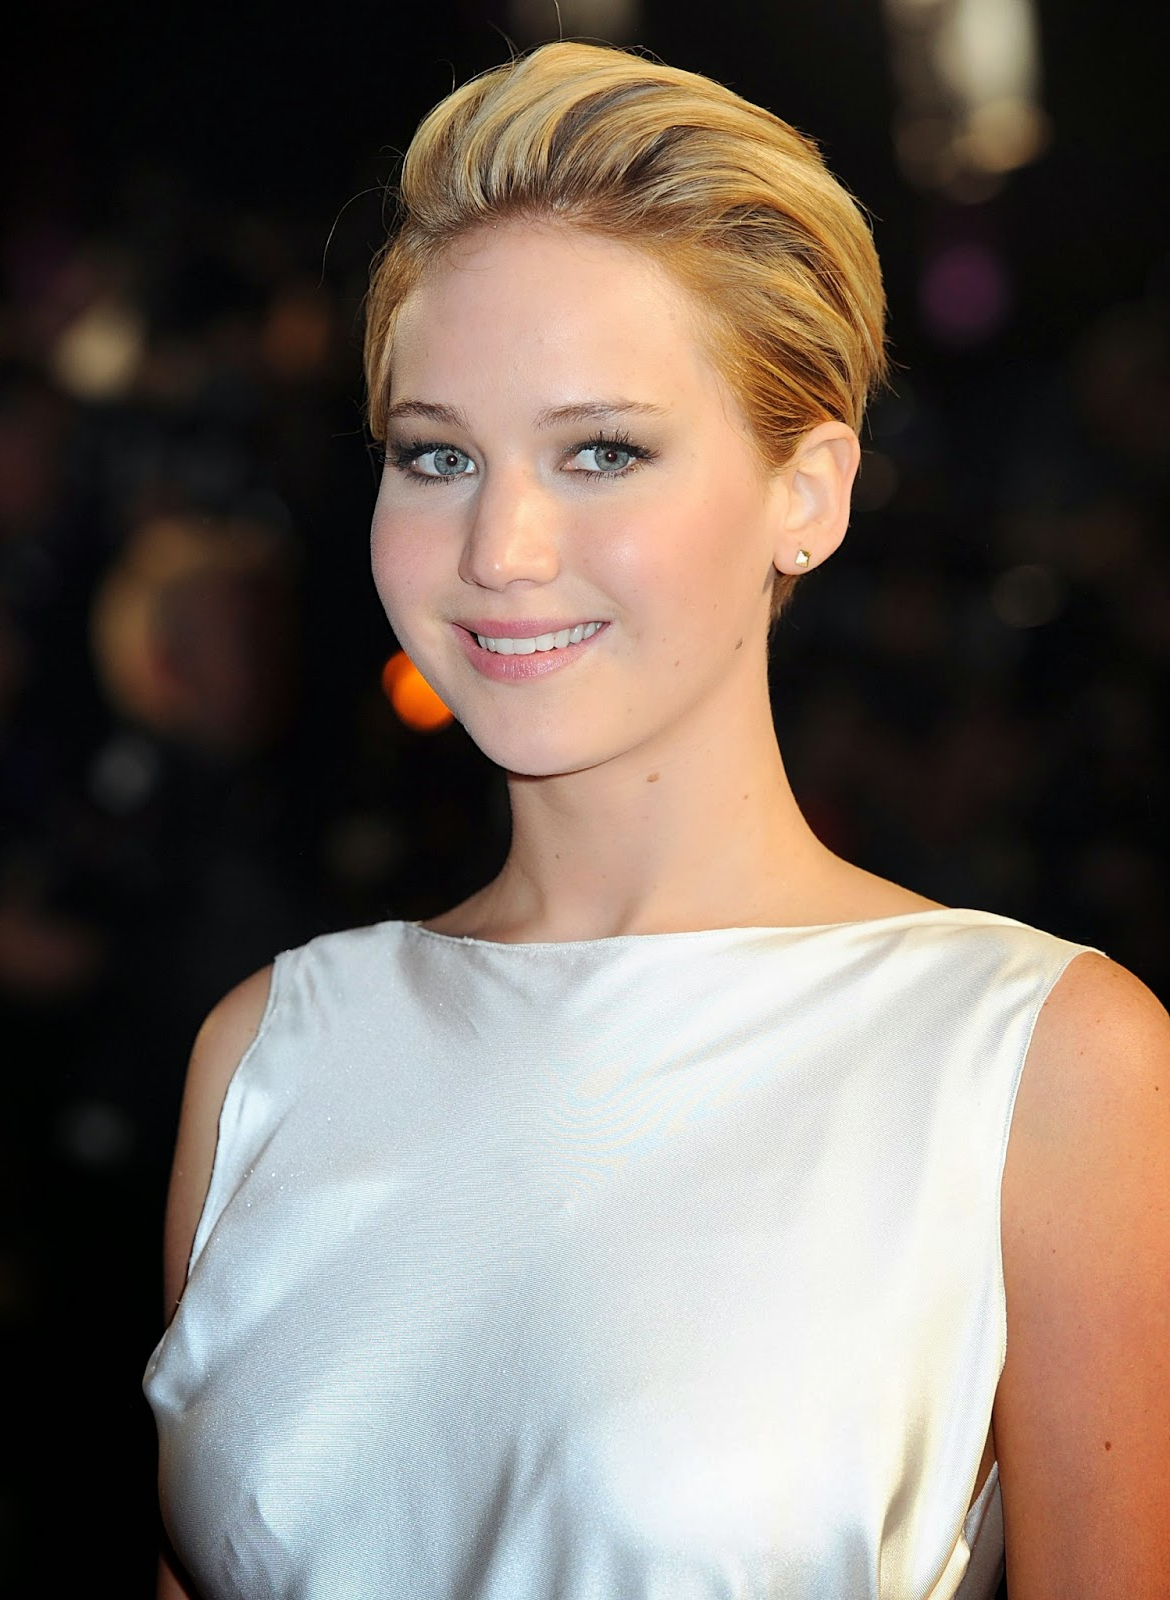 Jennifer Lawrence Hairstyles   Haircuts Within Jennifer Lawrence Short Hairstyles (View 18 of 25)